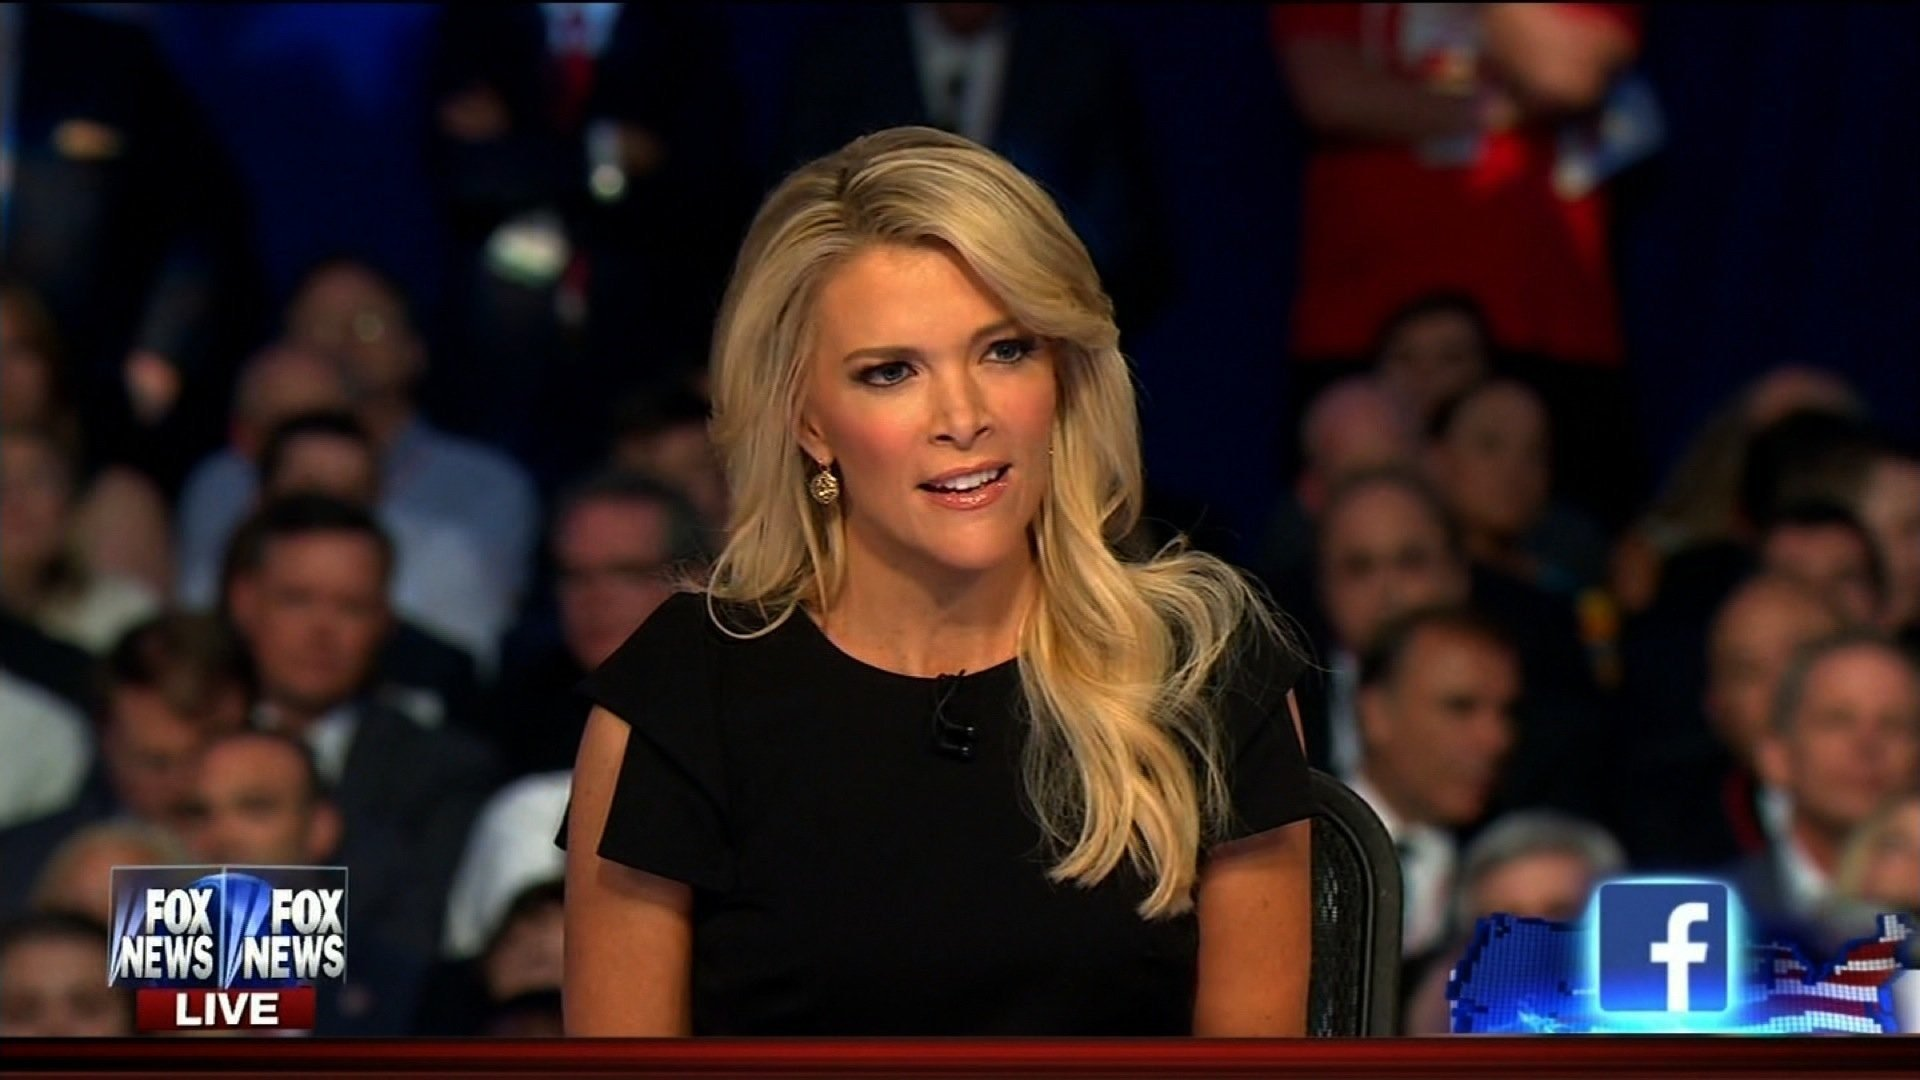 Donald Trump Buries The Hatchet With Megyn Kelly - But Doesn't Apologize